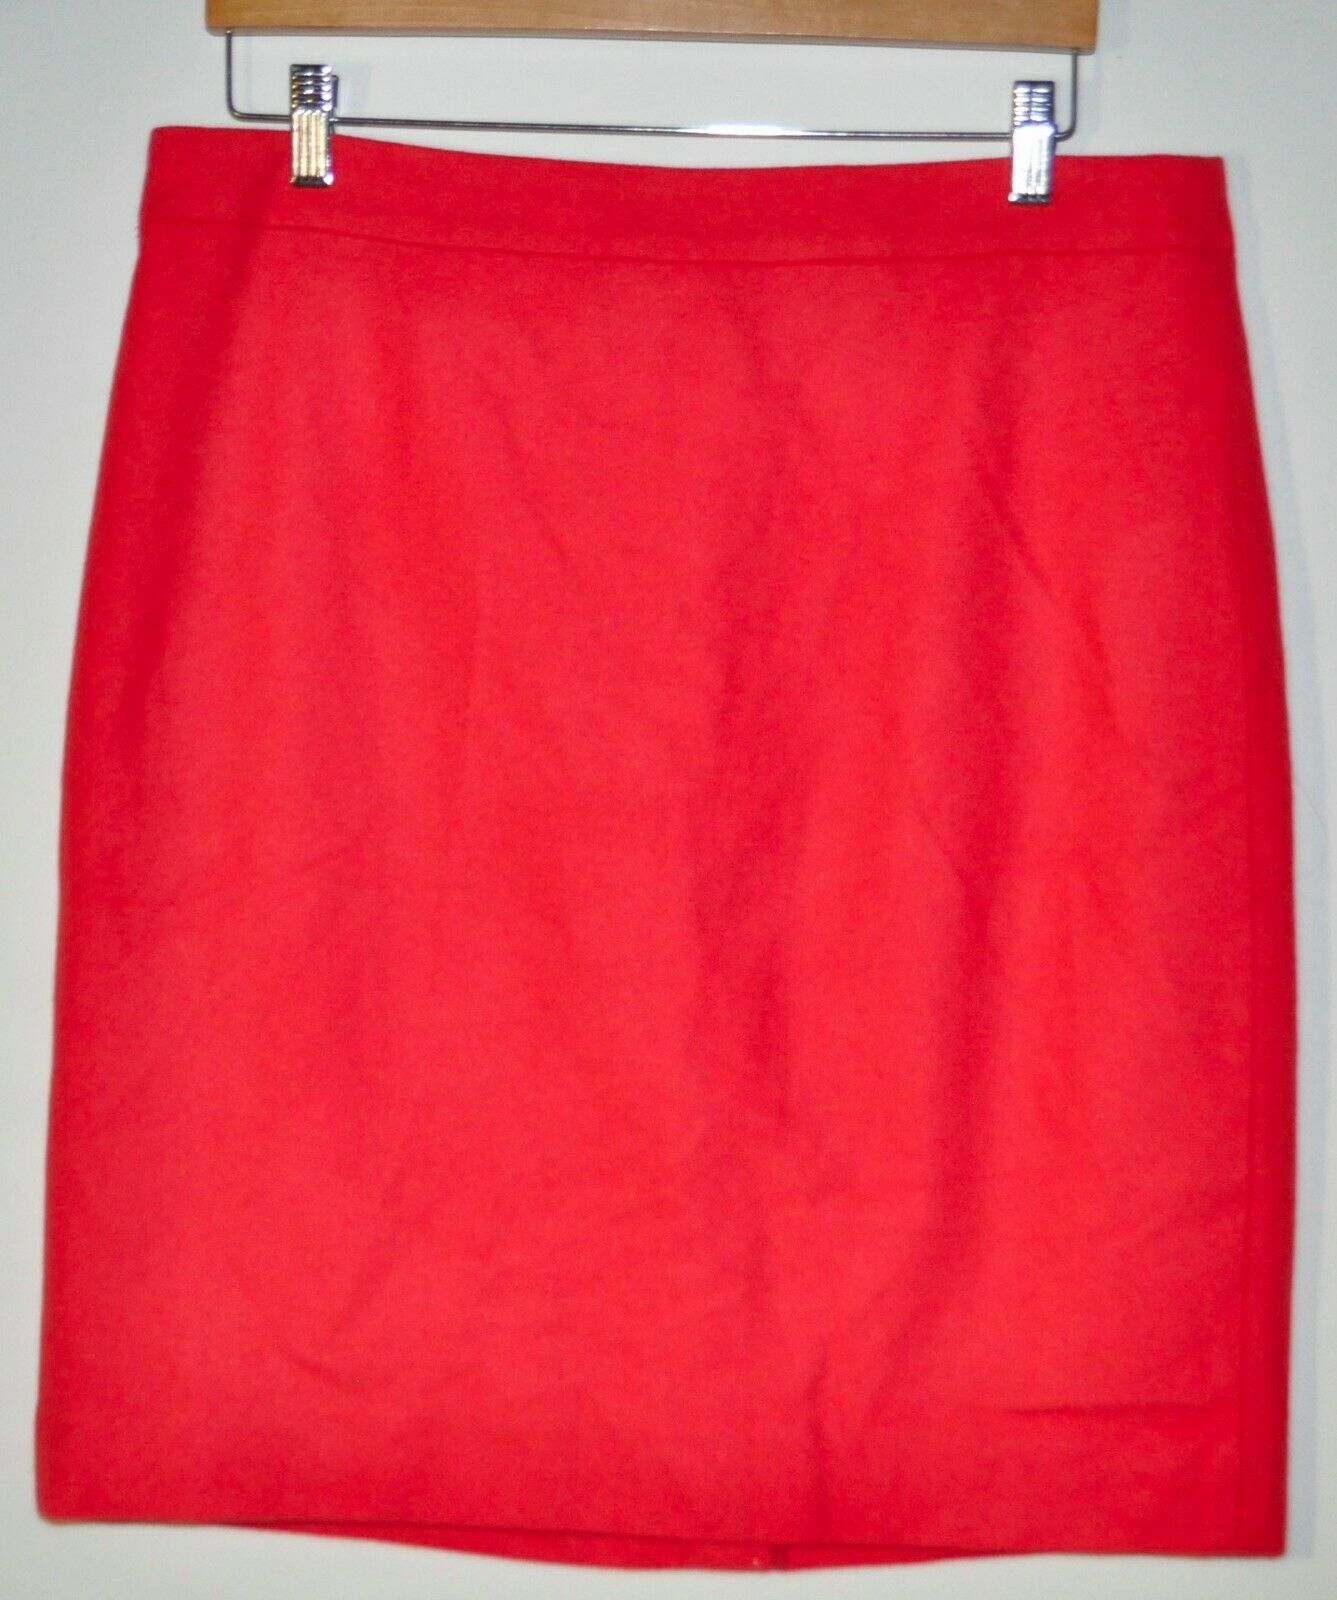 NEW J.Crew Size 12 Women's Salmon Pink Wool Blend Skirt Knee Length Lined  89.50